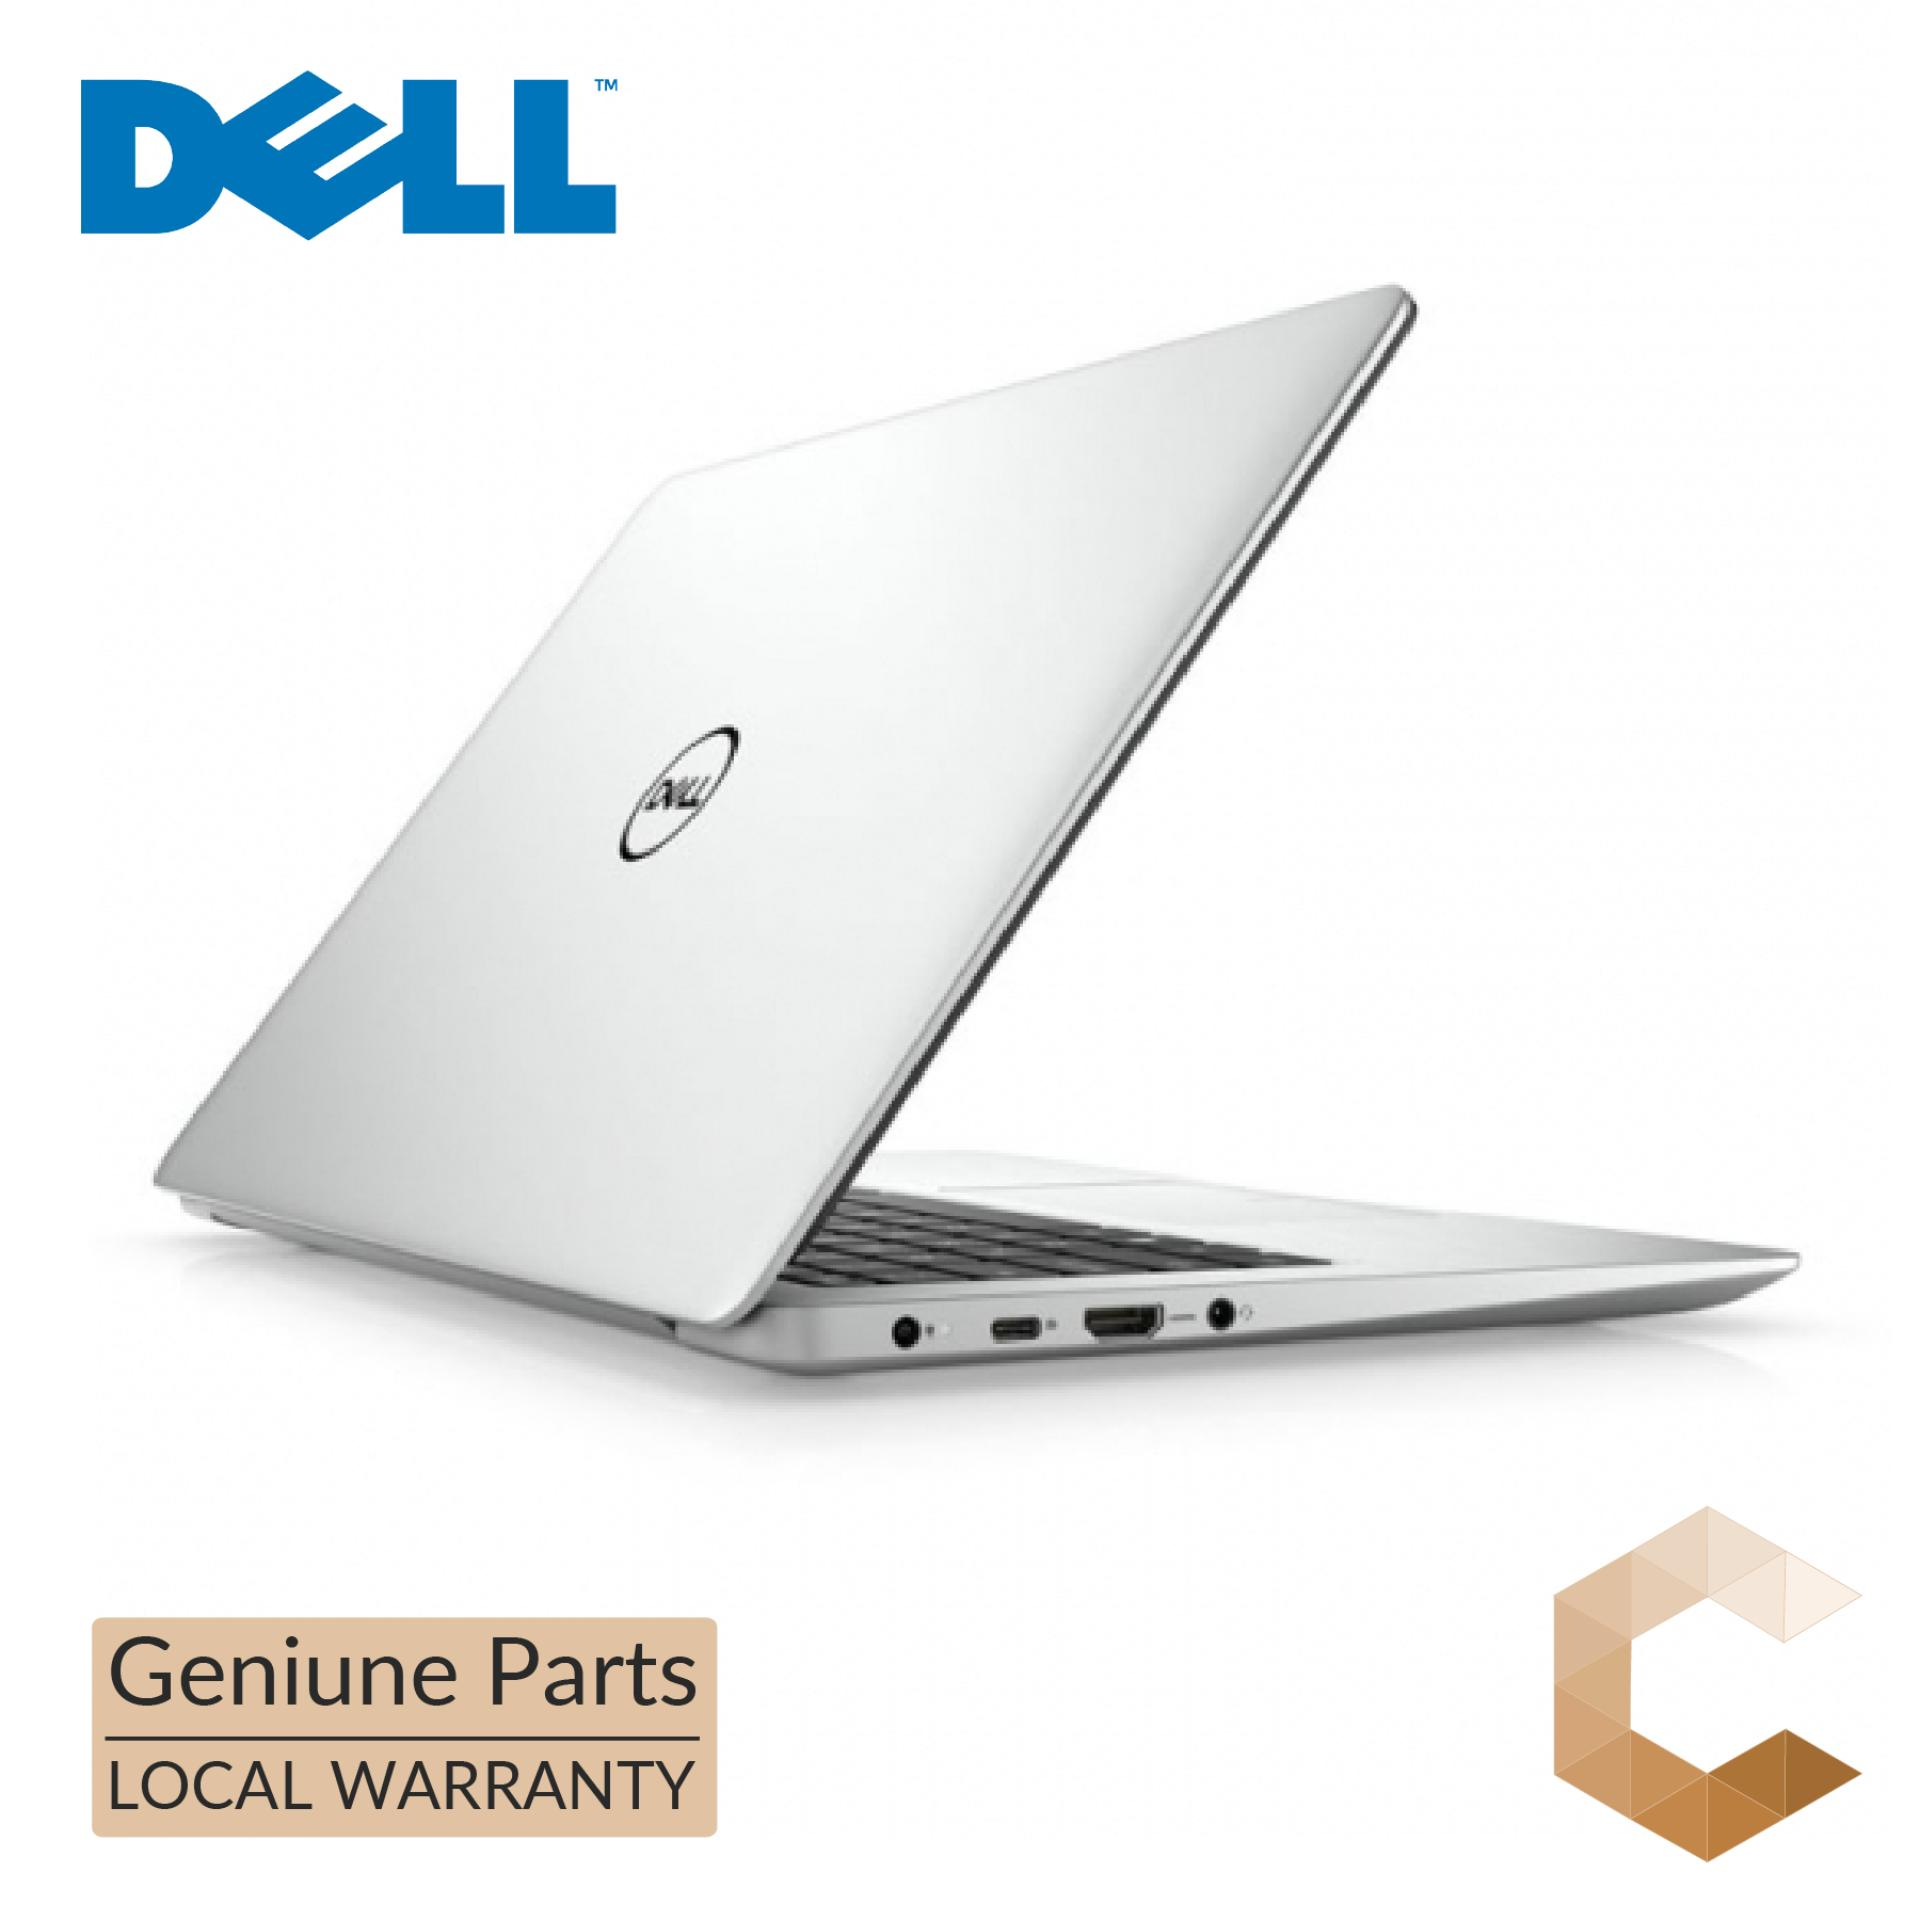 DELL NOTEBOOKS | 5370-855822G-W10-SLR